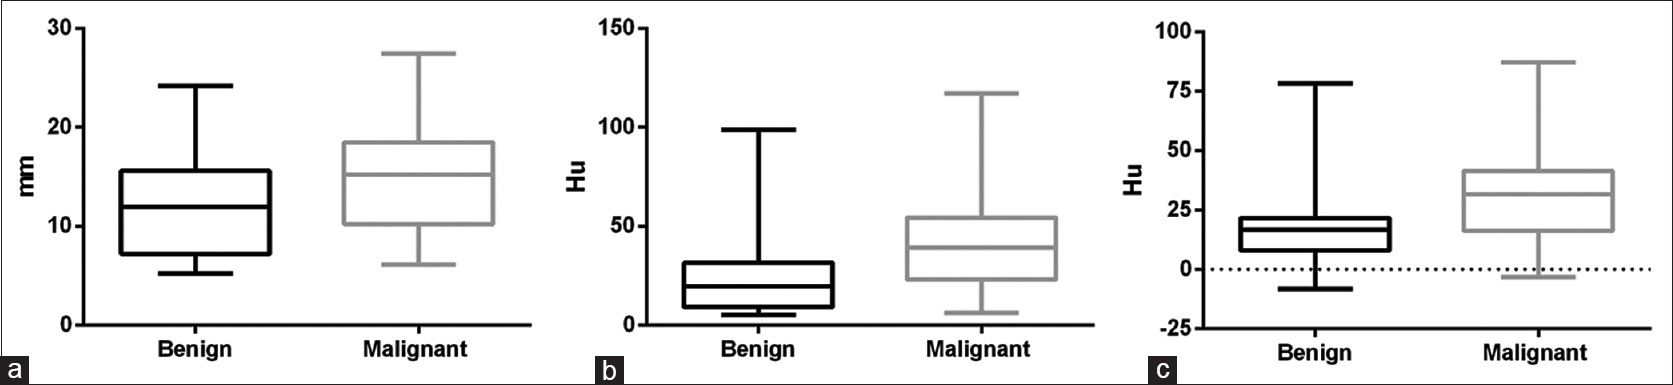 Figure 2: Box plot of ground-glass opacity-related computed tomography parameters in benign and malignant groups (a) diameter comparison; (b) maximum computed tomography value comparison; (c) mean computed tomography value comparison